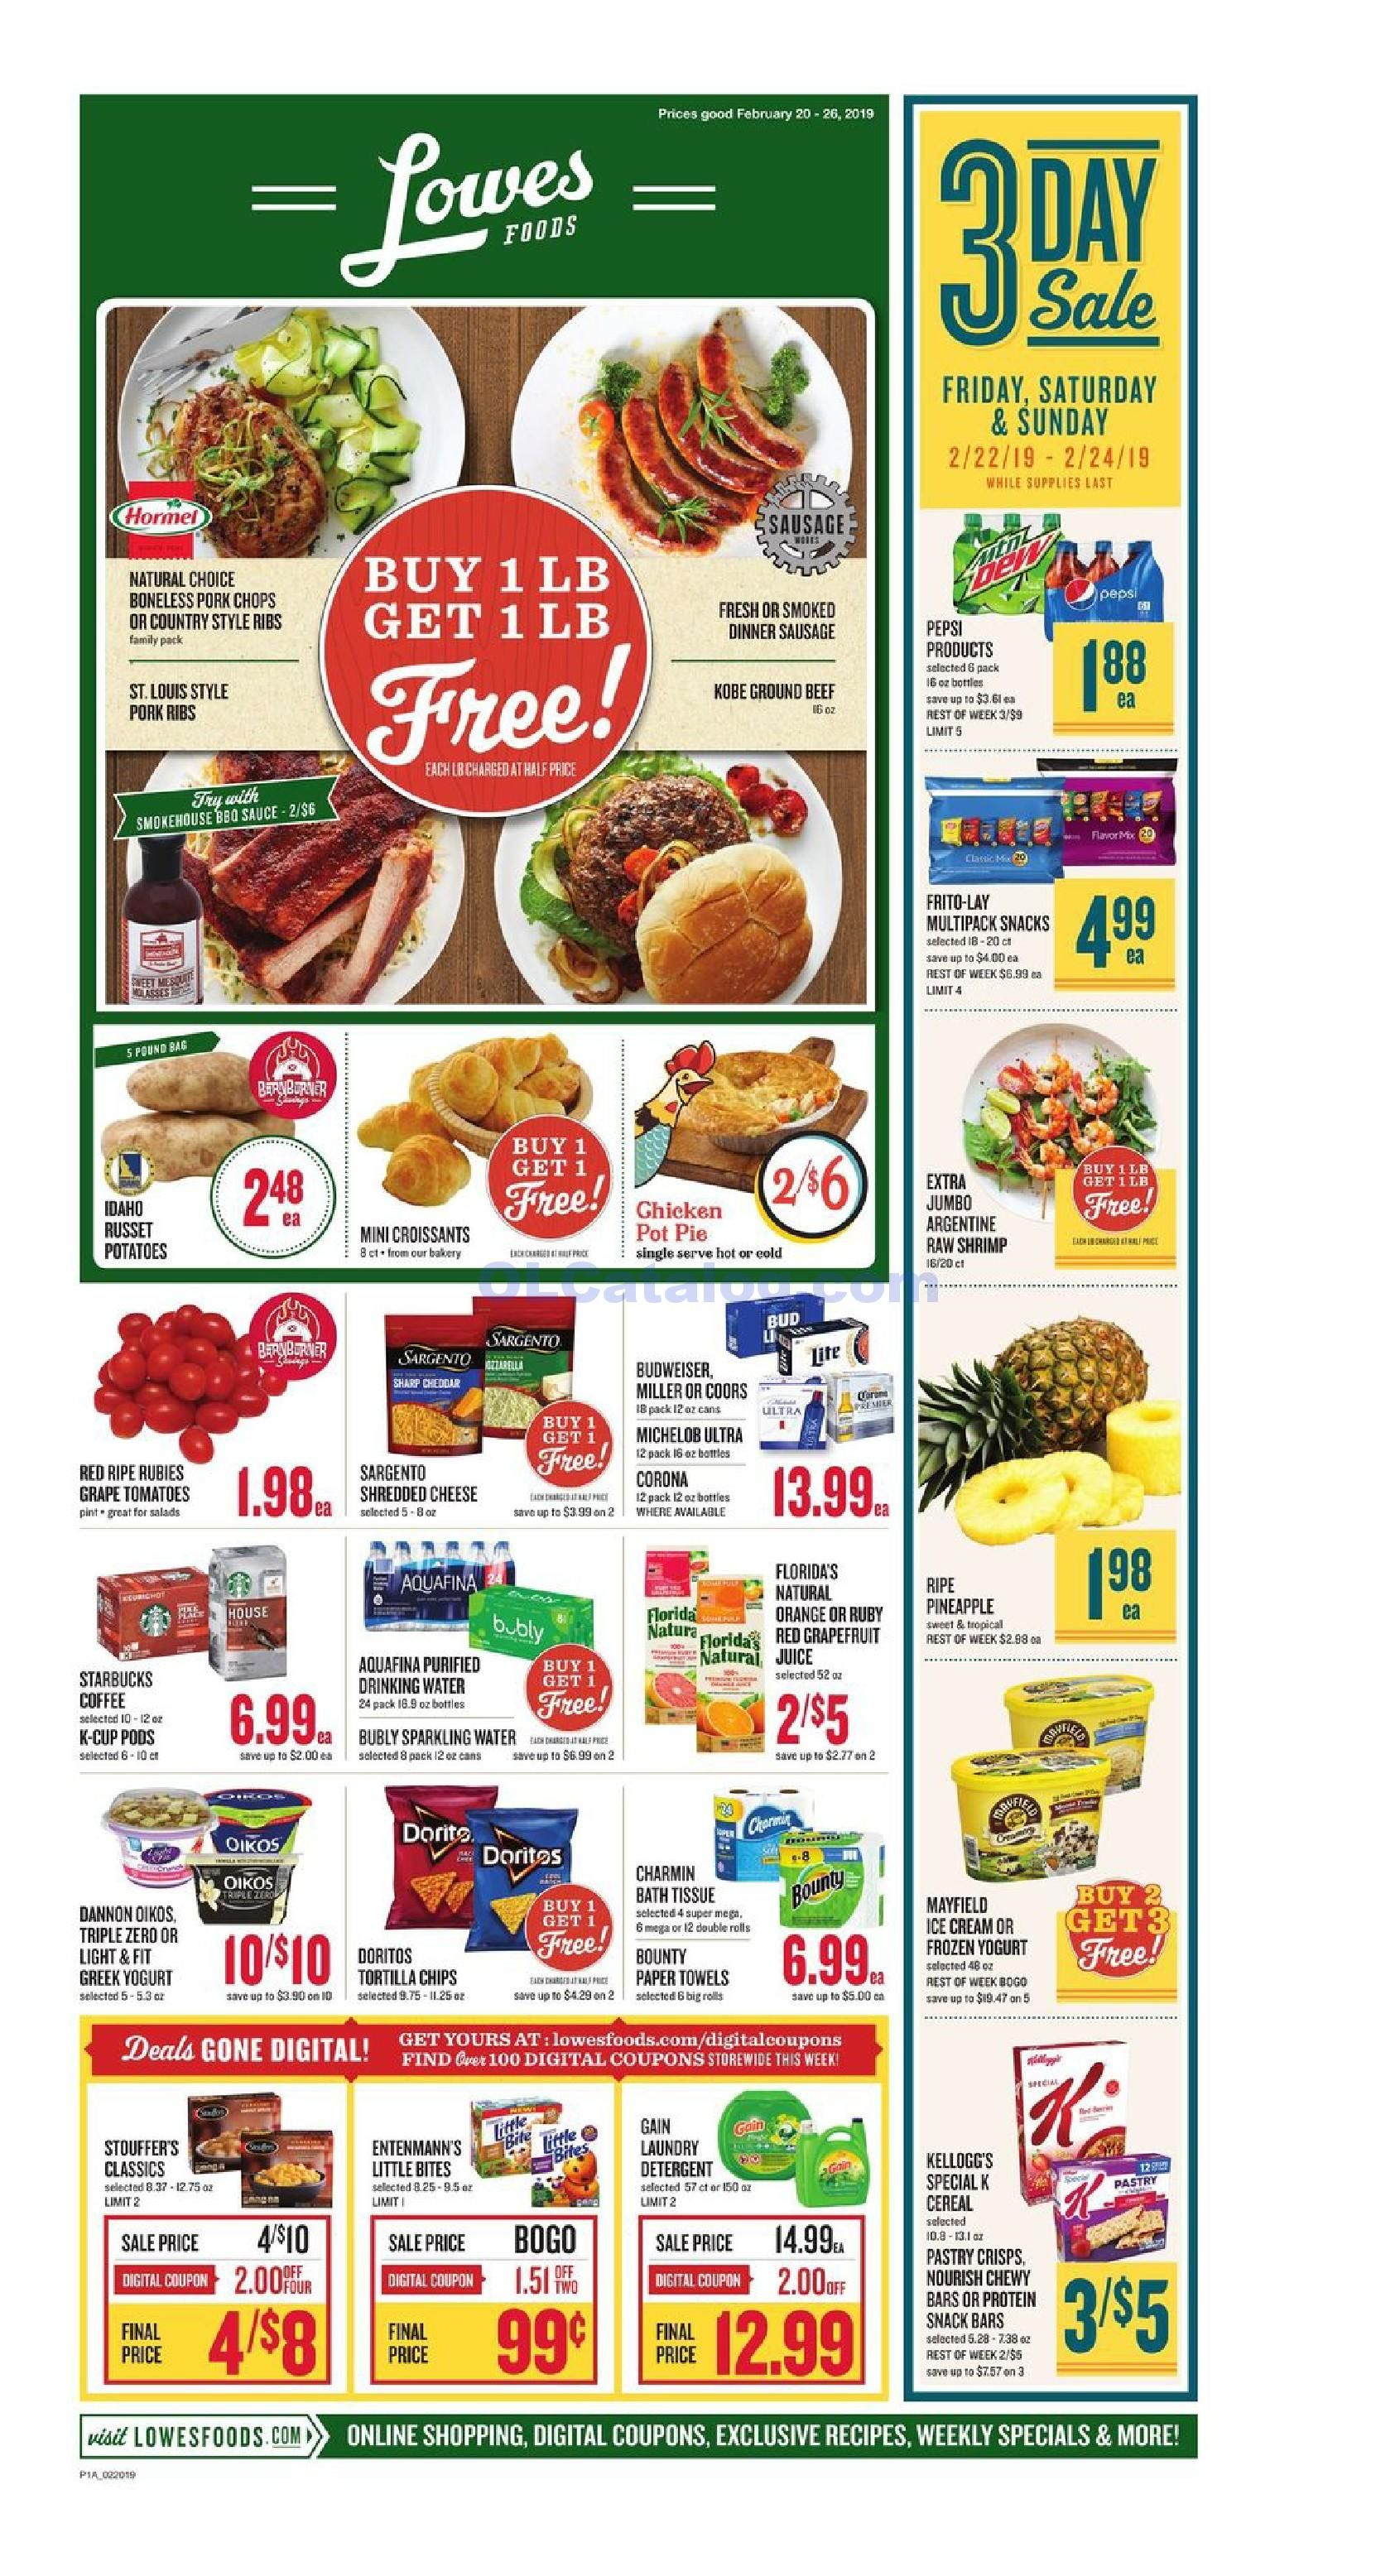 Lowes foods Weekly Ad February 20 26, 2019. View the